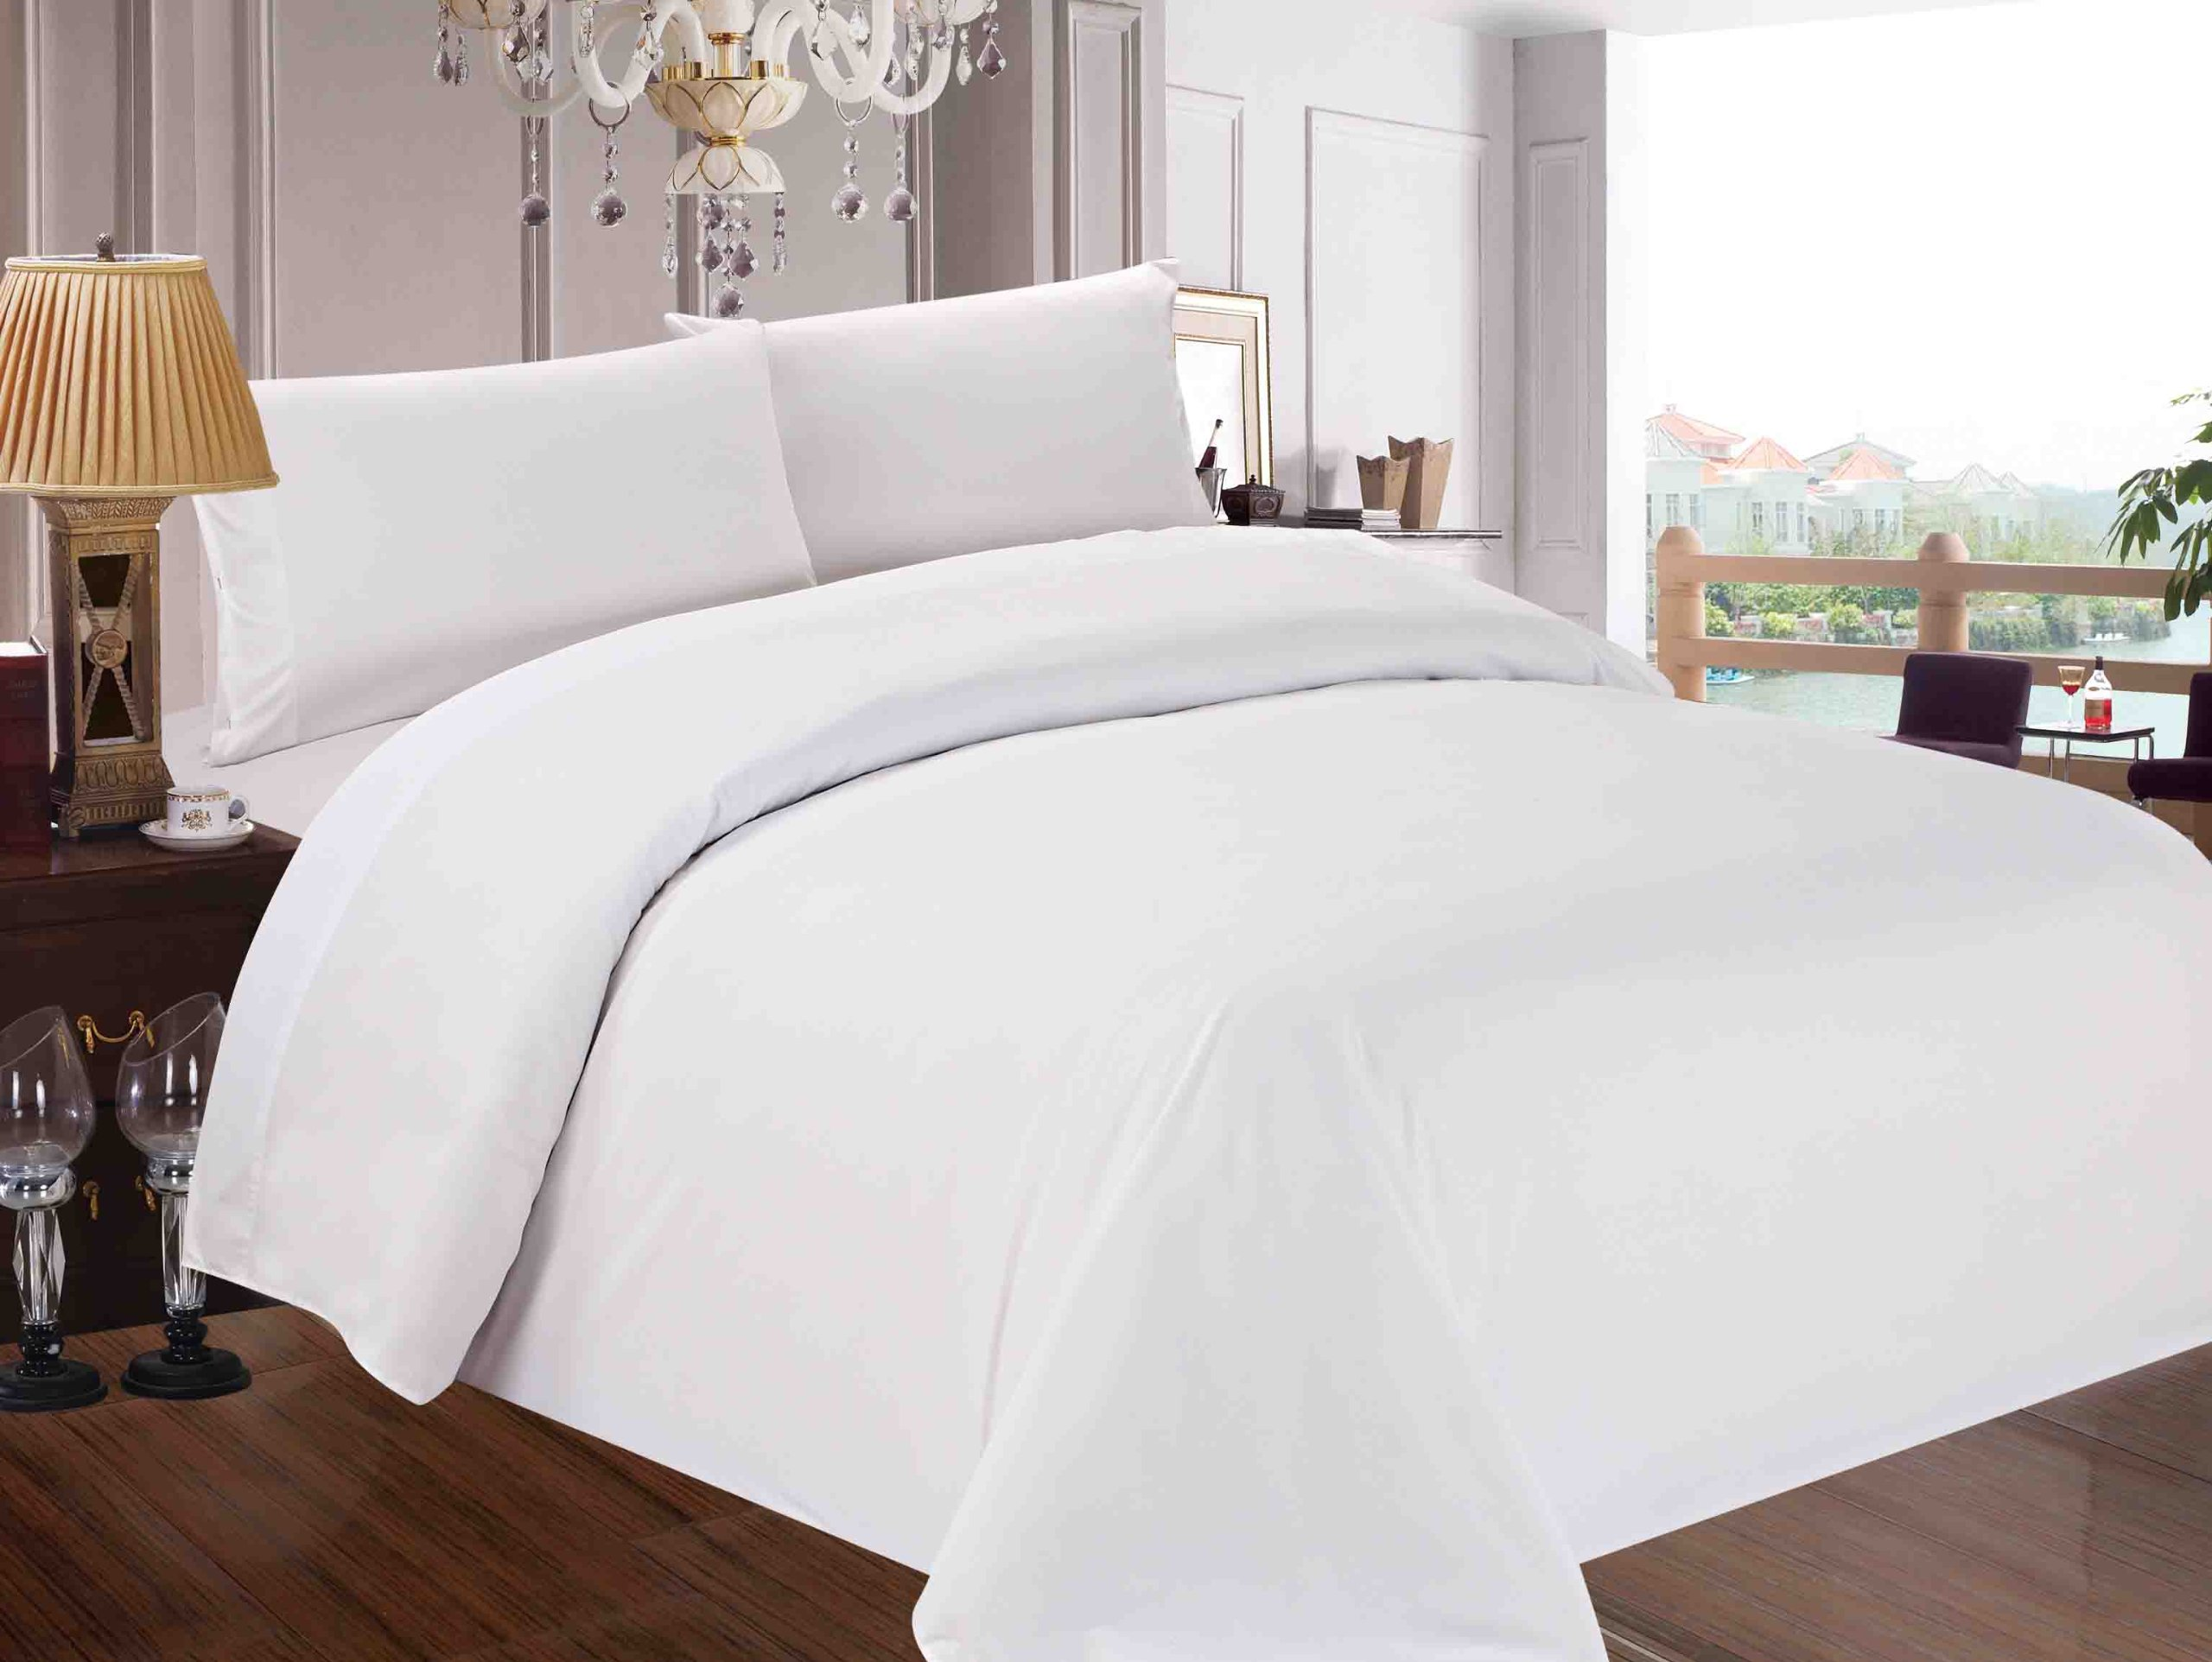 Red Nomad Luxury Duvet Cover & Sham Set, 3 Piece, King/California King, White